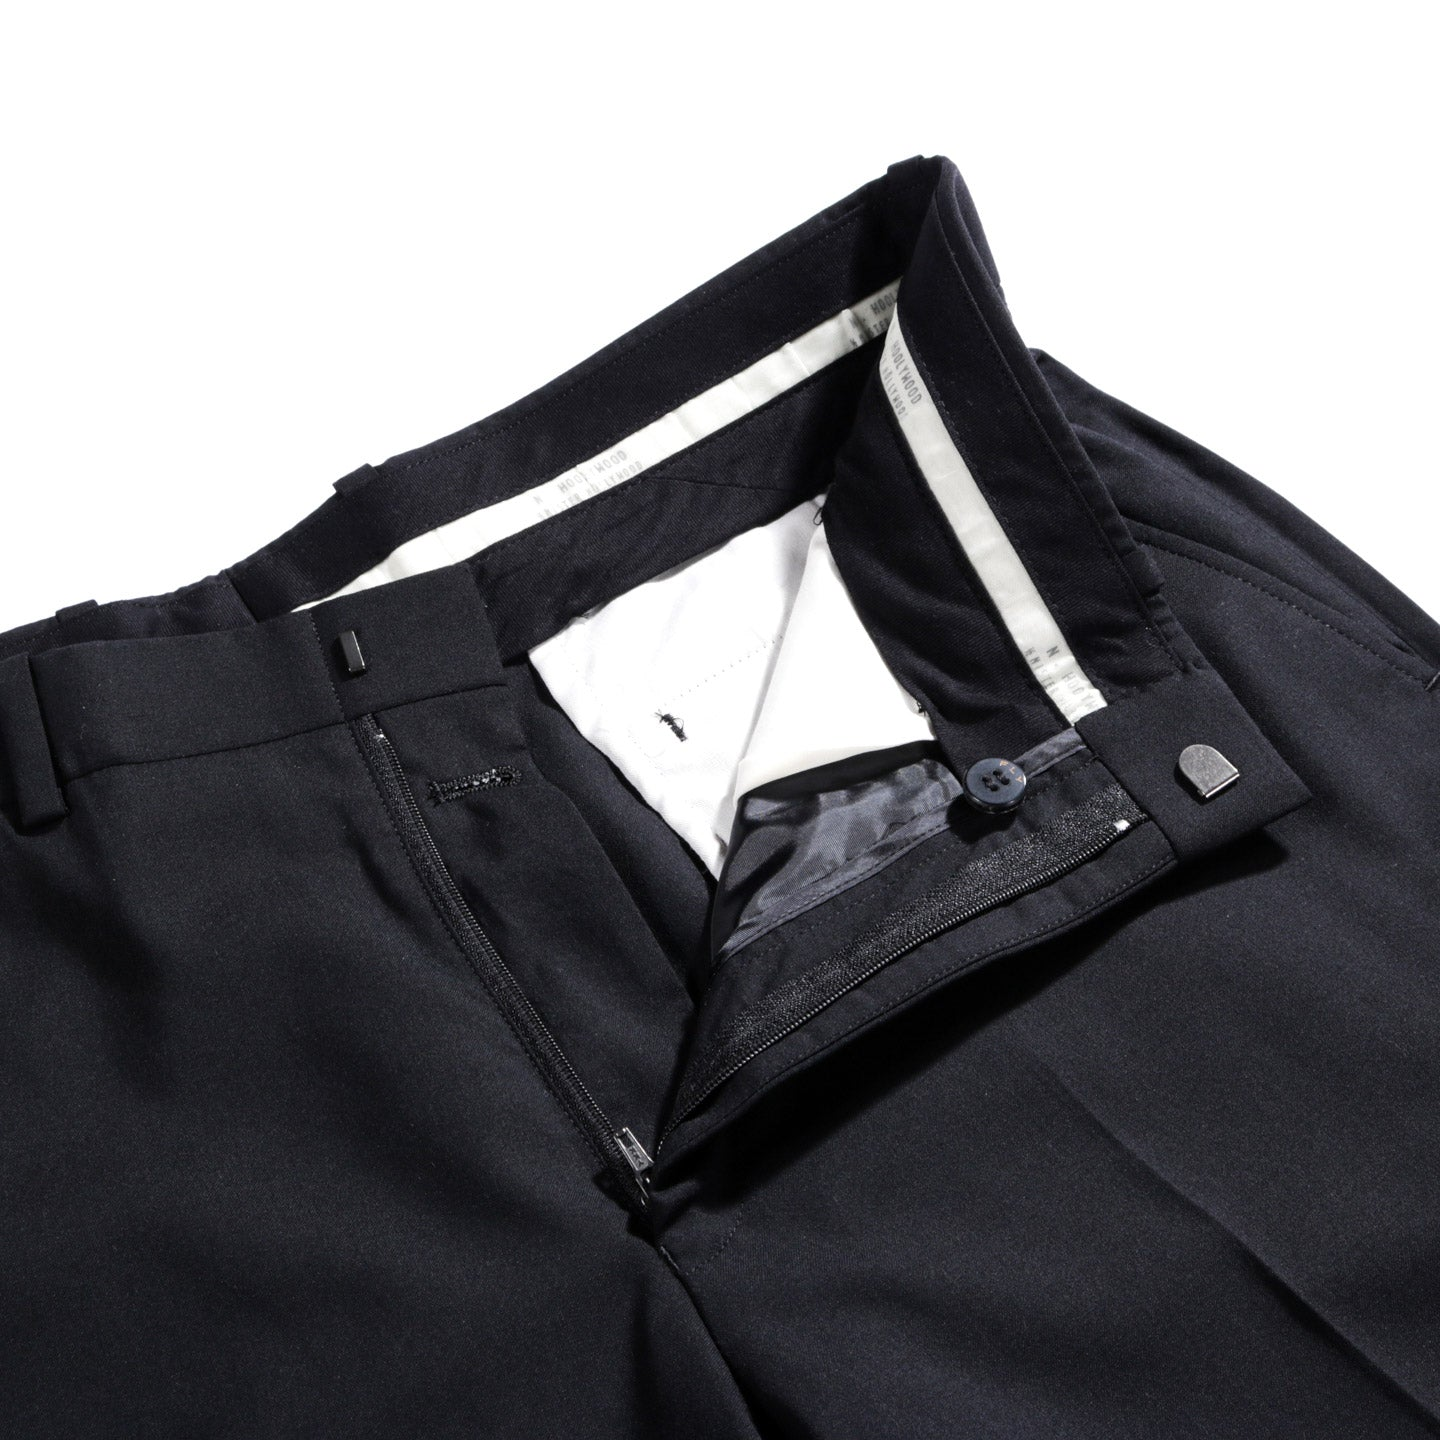 N.HOOLYWOOD 282-PT04 SUIT PANTS BLACK